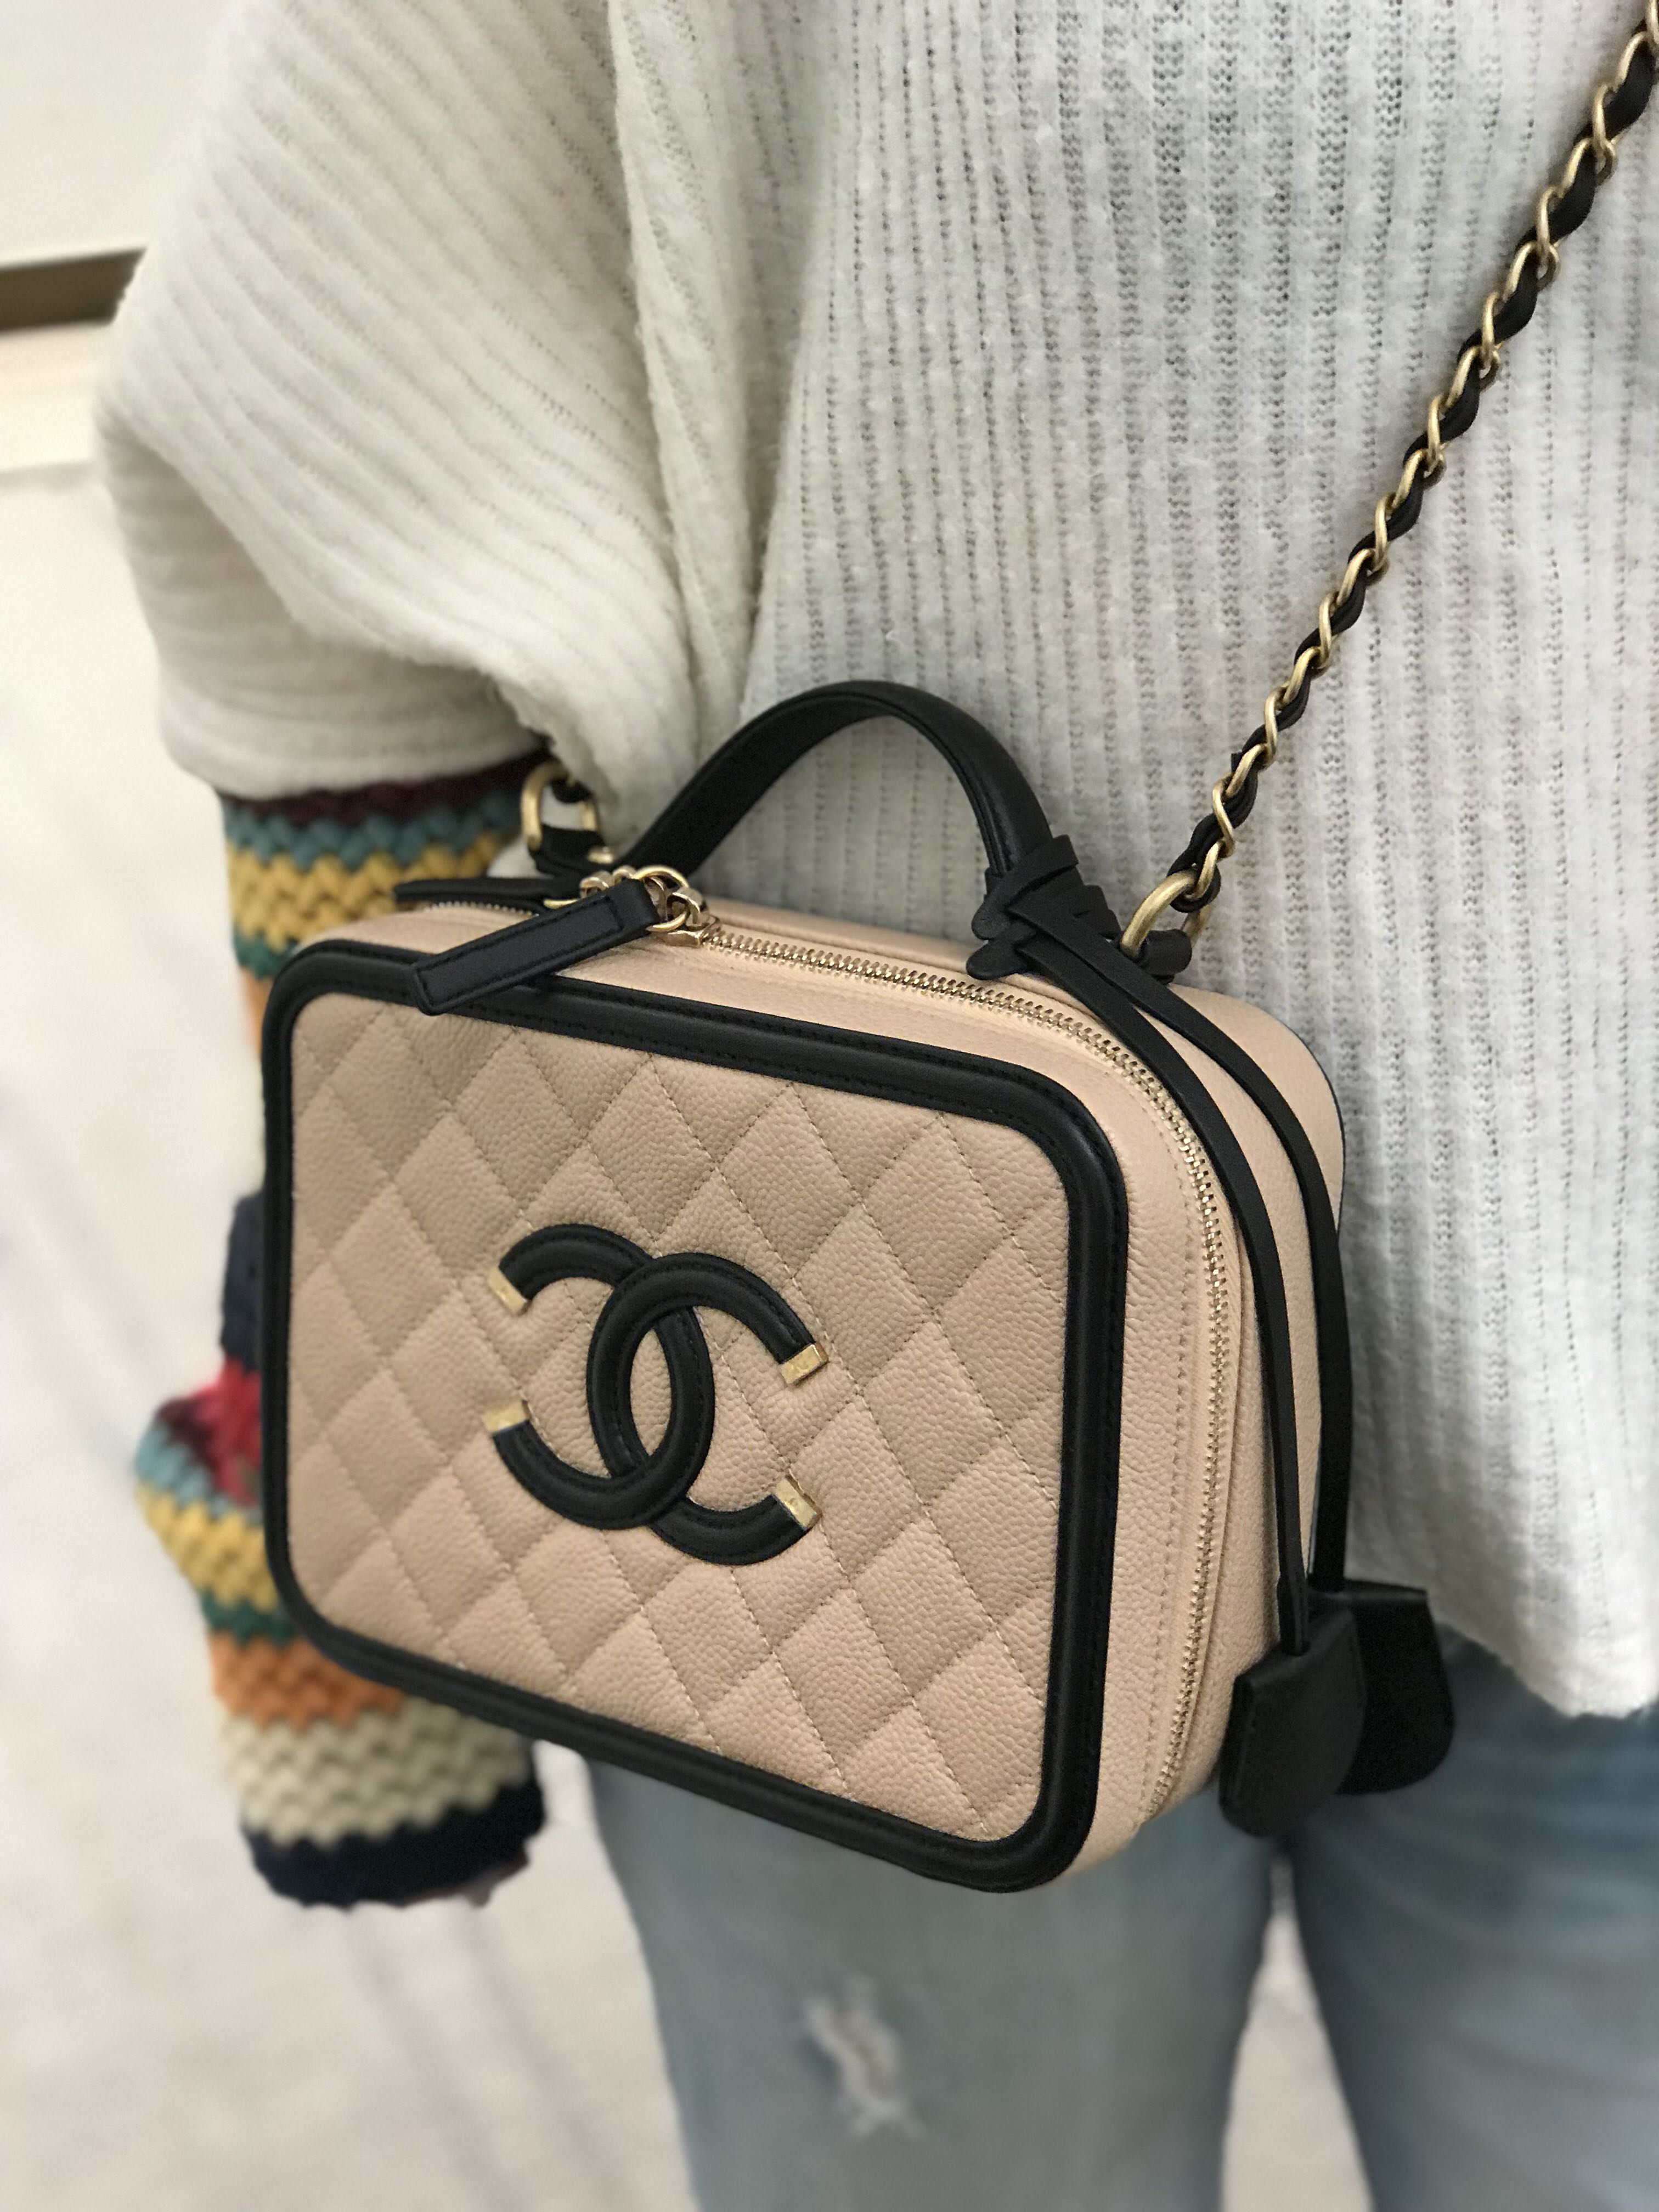 0598b6c901a7d7 CHANEL Caviar Quilted Large CC Filigree Vanity Case Beige Black, Women's  Fashion, Bags & Wallets, Sling Bags on Carousell